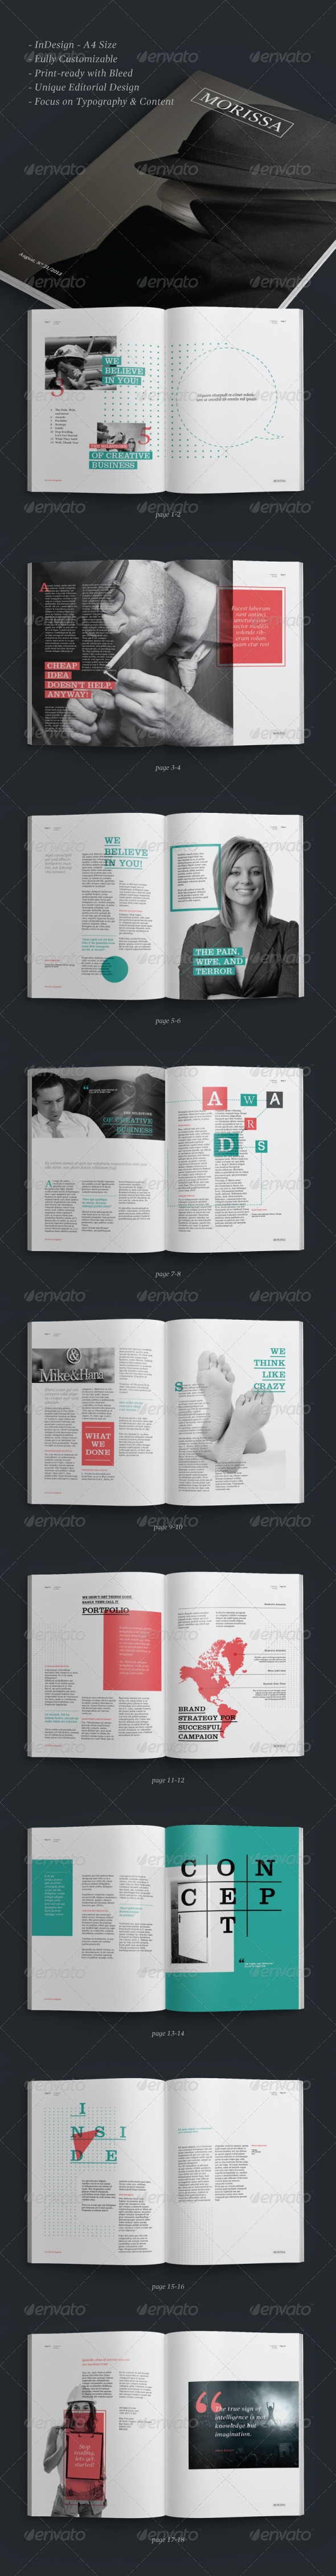 GraphicRiver Minimal Multipurpose Brochure 5669548